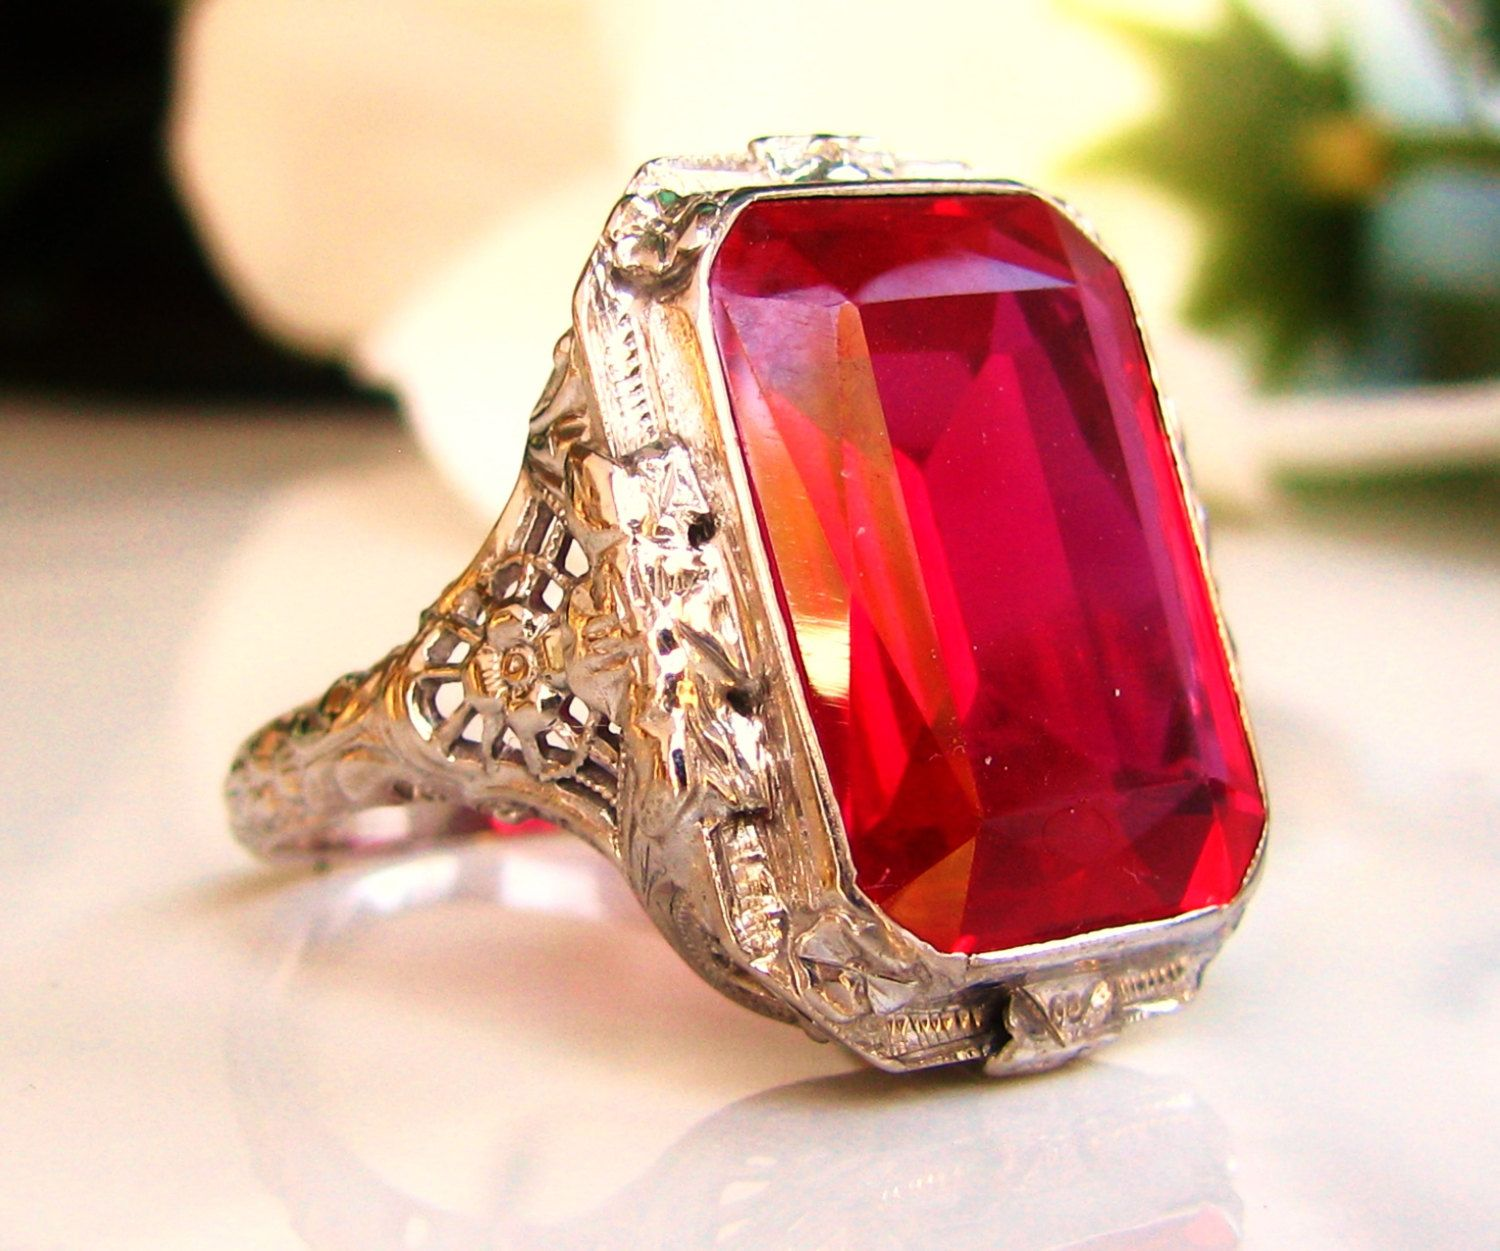 emerald rings differences between the real and synthetic. Large Antique Style Emerald Cut Ruby Ring 3.79ct Synthetic Alternative Engagement 14K White Gold Filigree Size 8.25! By LadyRoseVintageJewel Rings Differences Between The Real And E